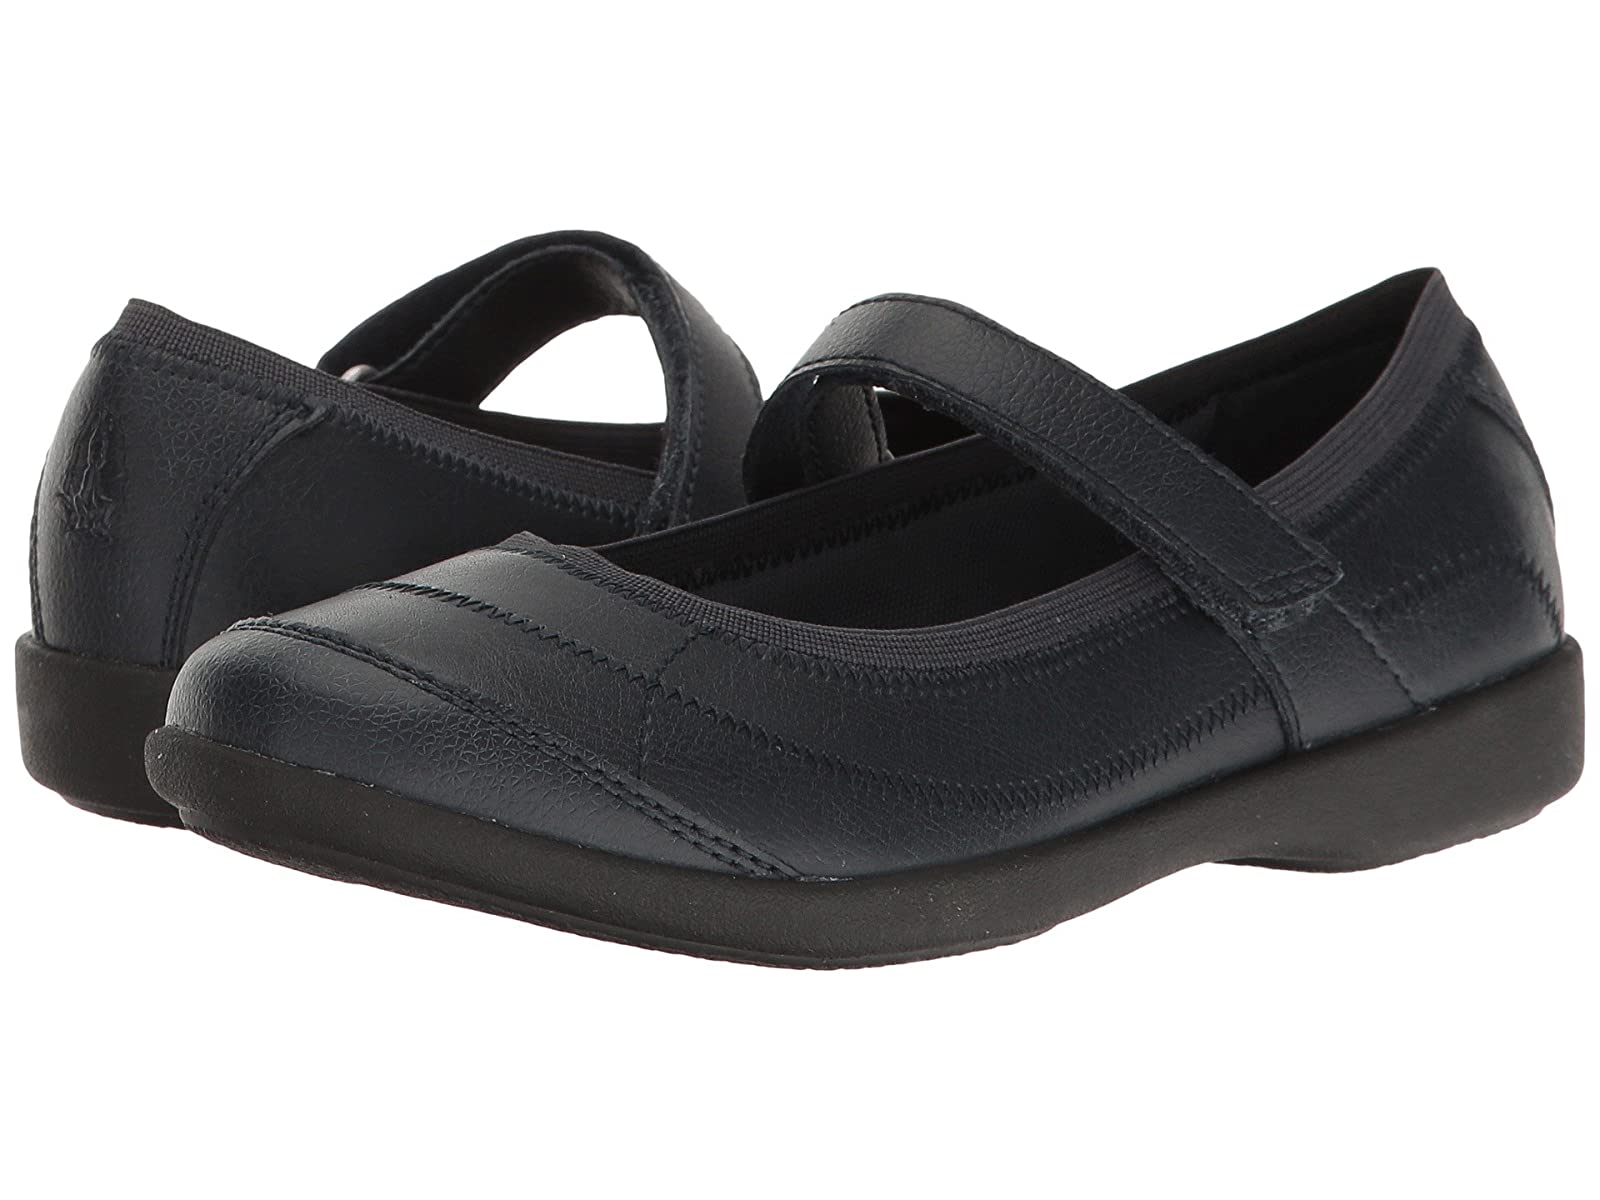 Hush Puppies Kids Reese (Little Kid/Big Kid)Atmospheric grades have affordable shoes